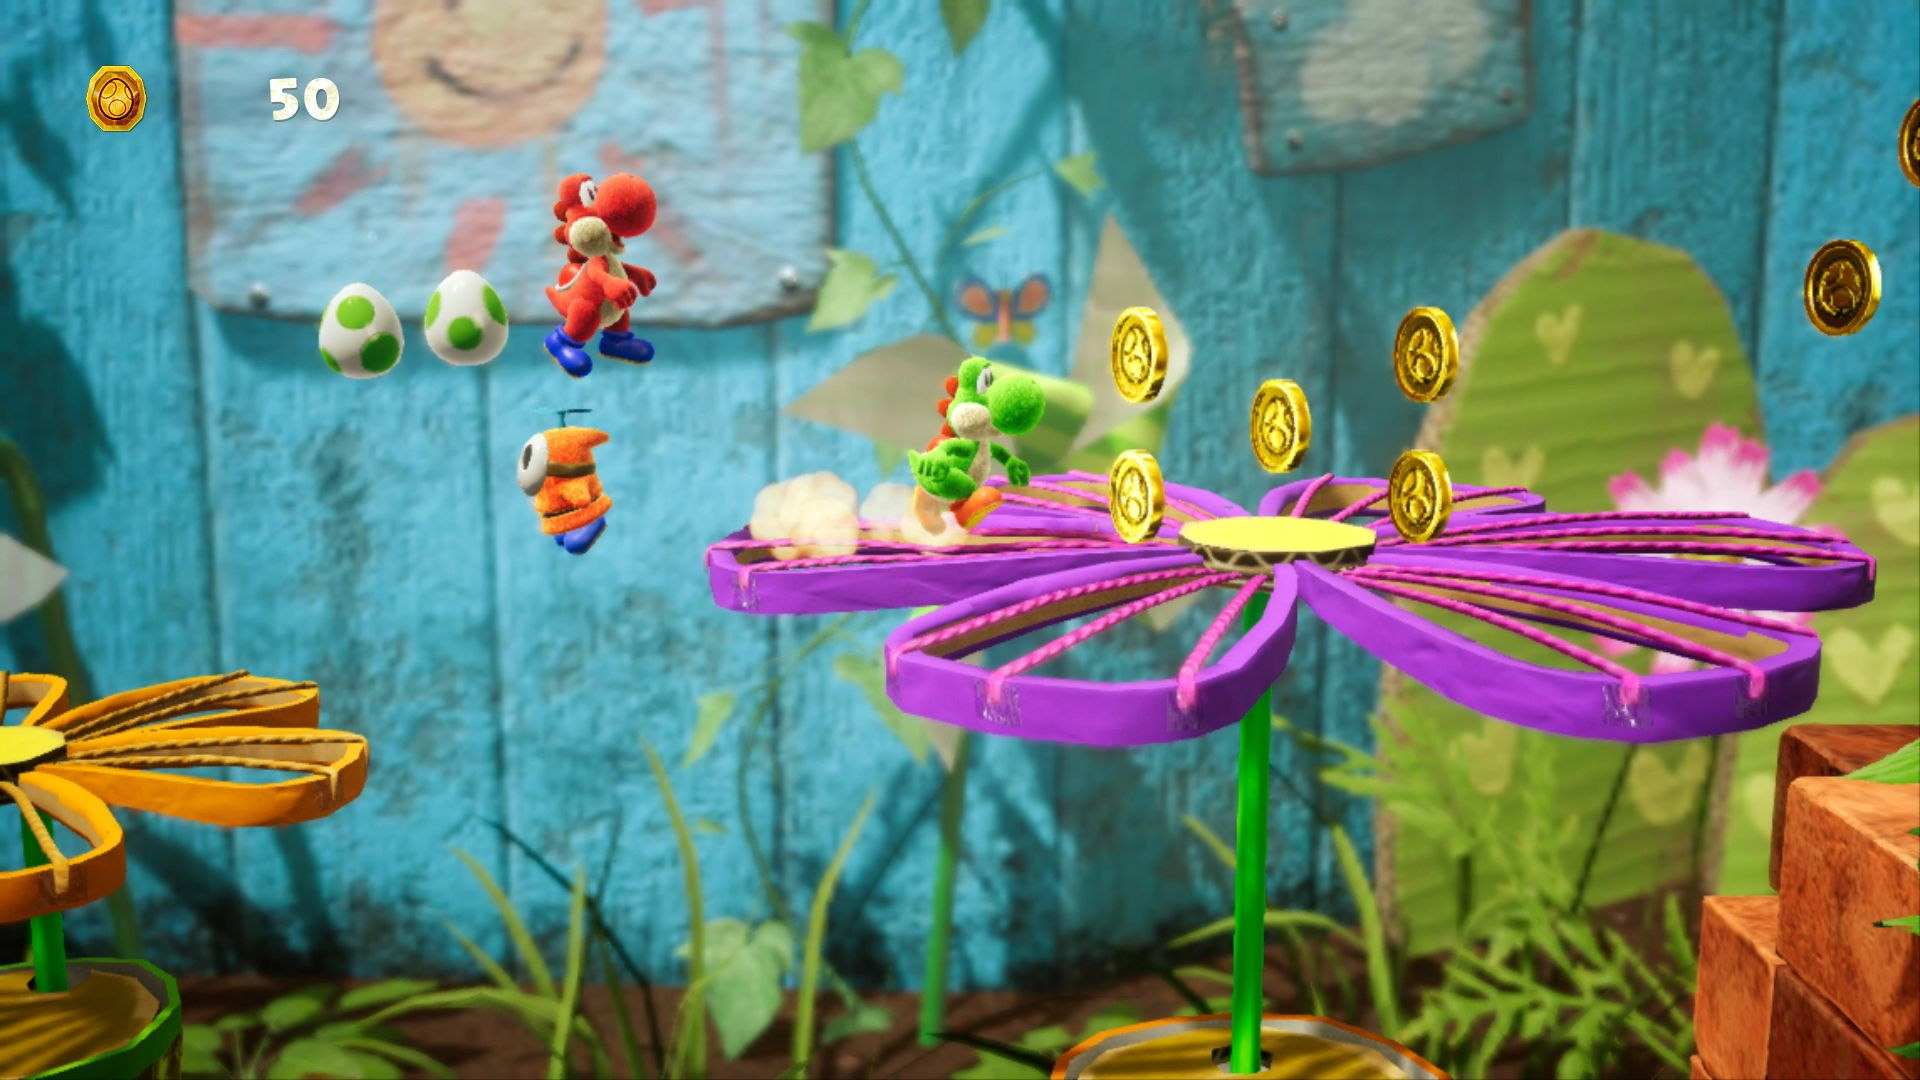 3D, Action, Good Feel, Nintendo, Nintendo Switch Review, Platformer, Rating 8/10, Switch Review, Yoshi's Crafted World, Yoshi's Crafted World Review